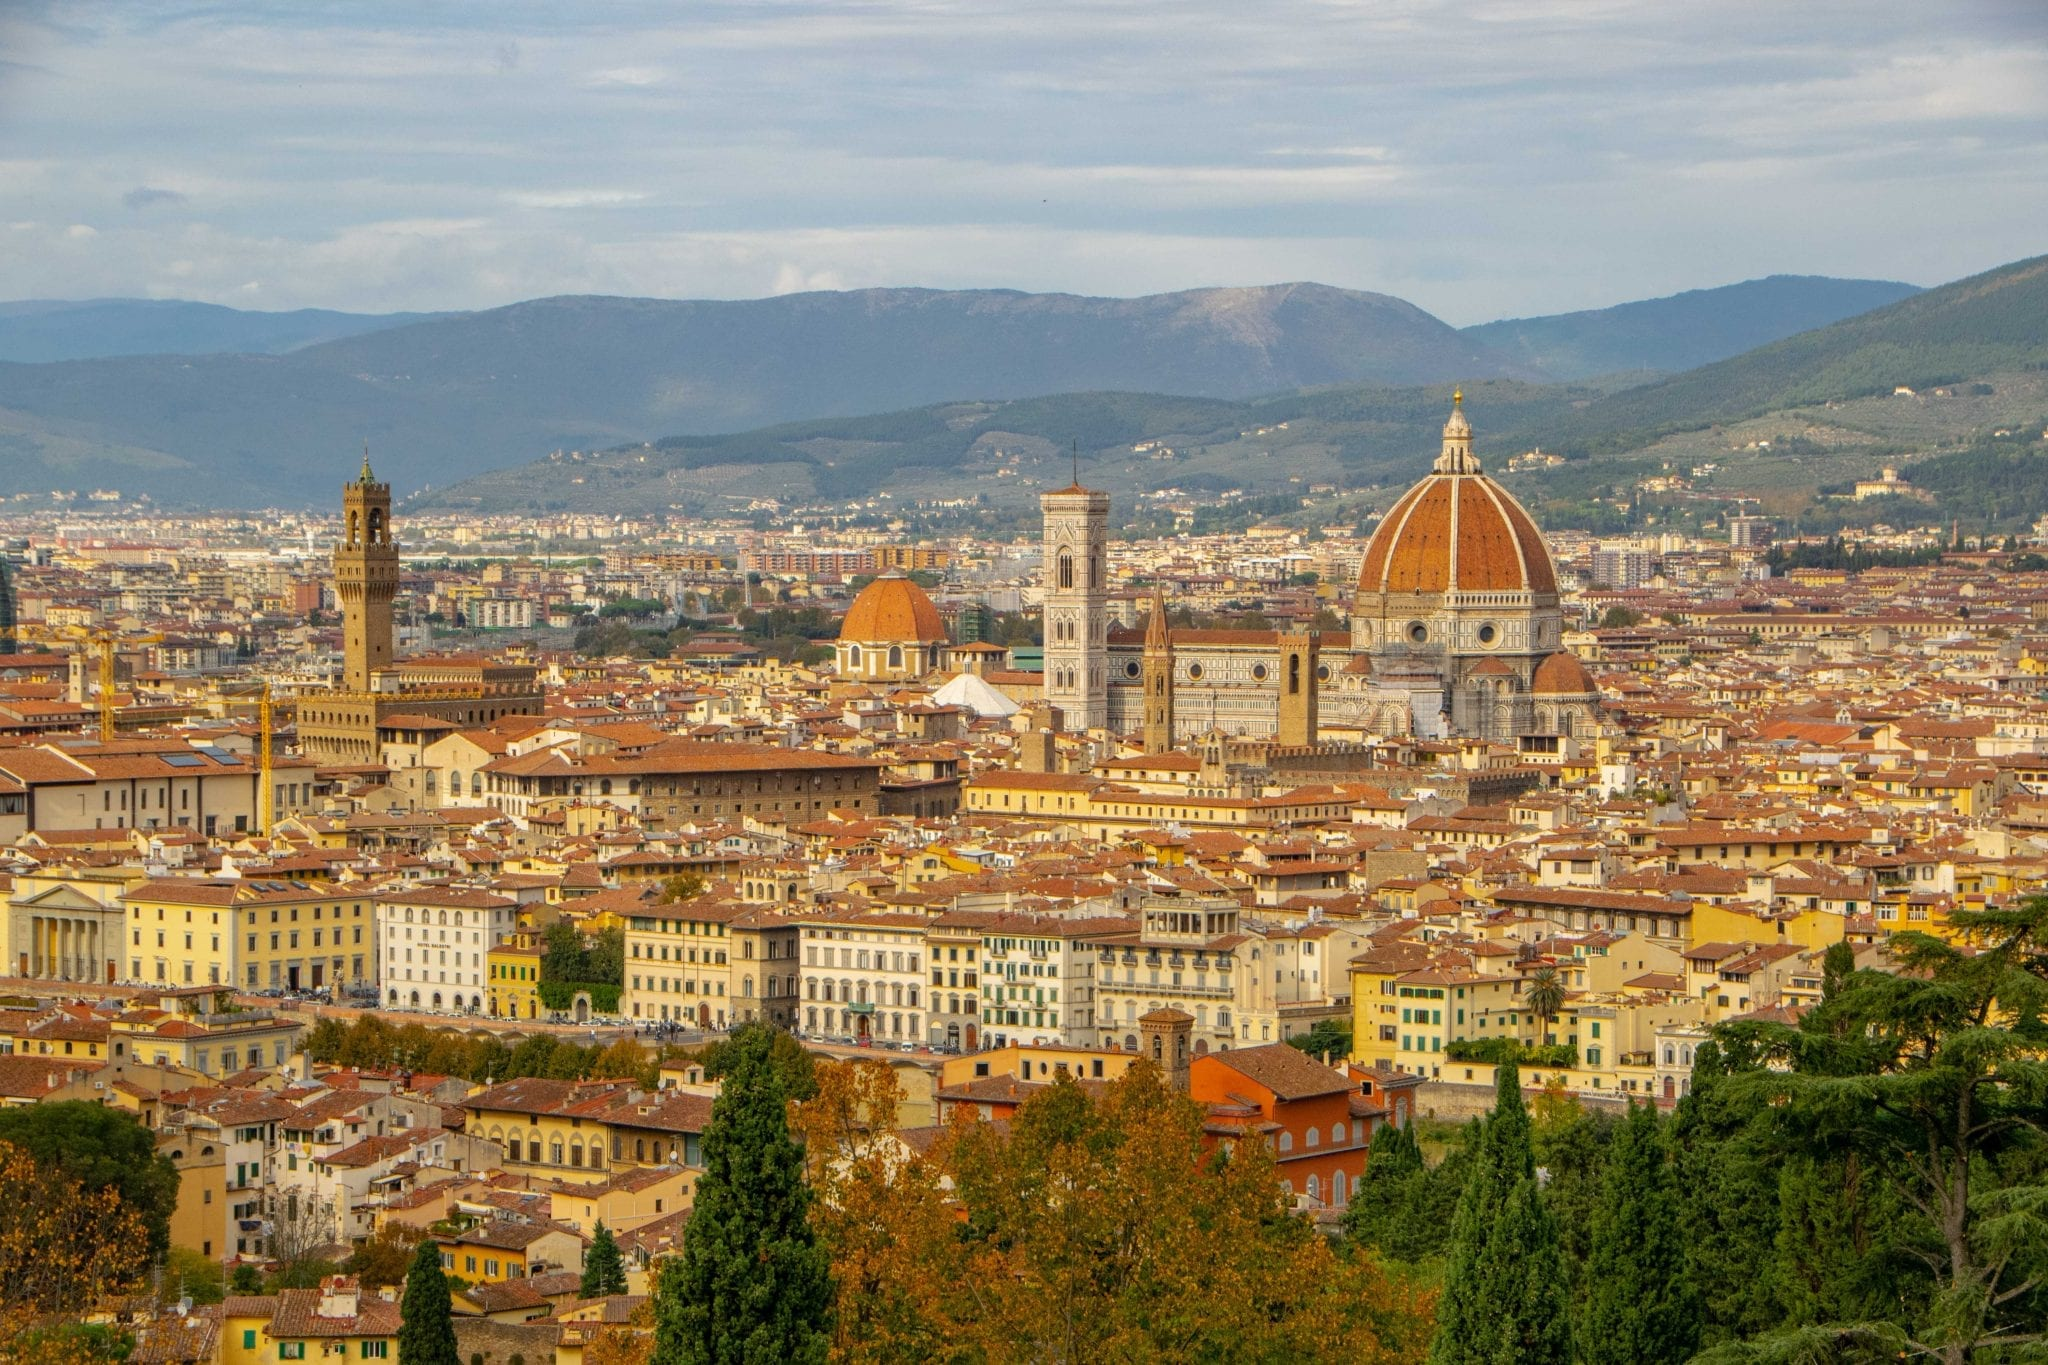 Day Trip to Florence from Rome: View of Duomo from Piazzale Michelangelo